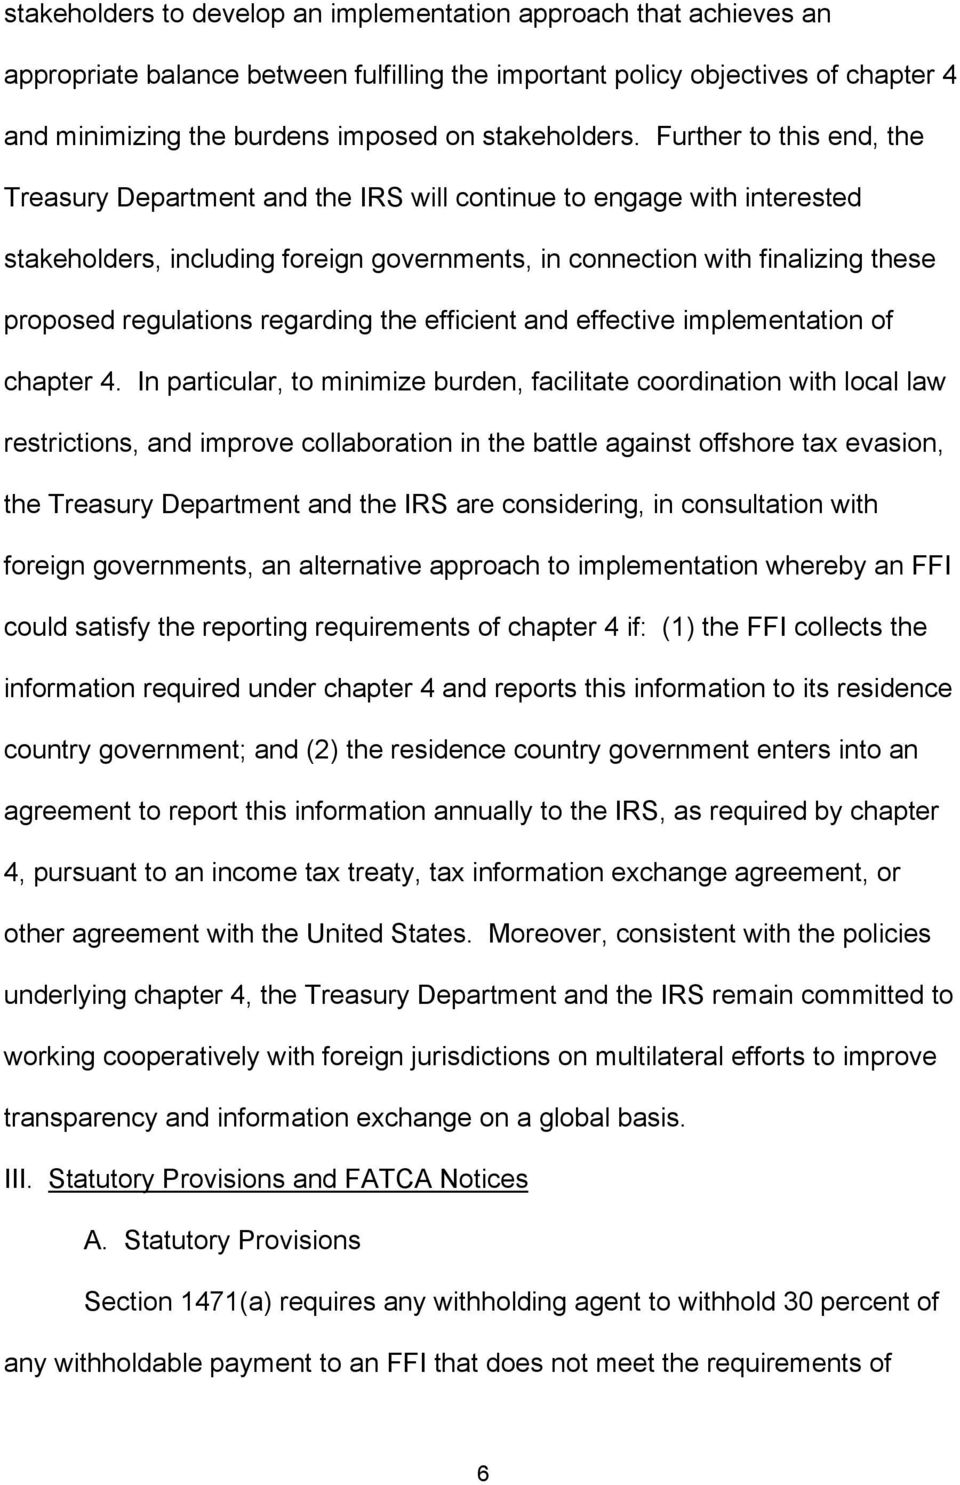 Further to this end, the Treasury Department and the IRS will continue to engage with interested stakeholders, including foreign governments, in connection with finalizing these proposed regulations